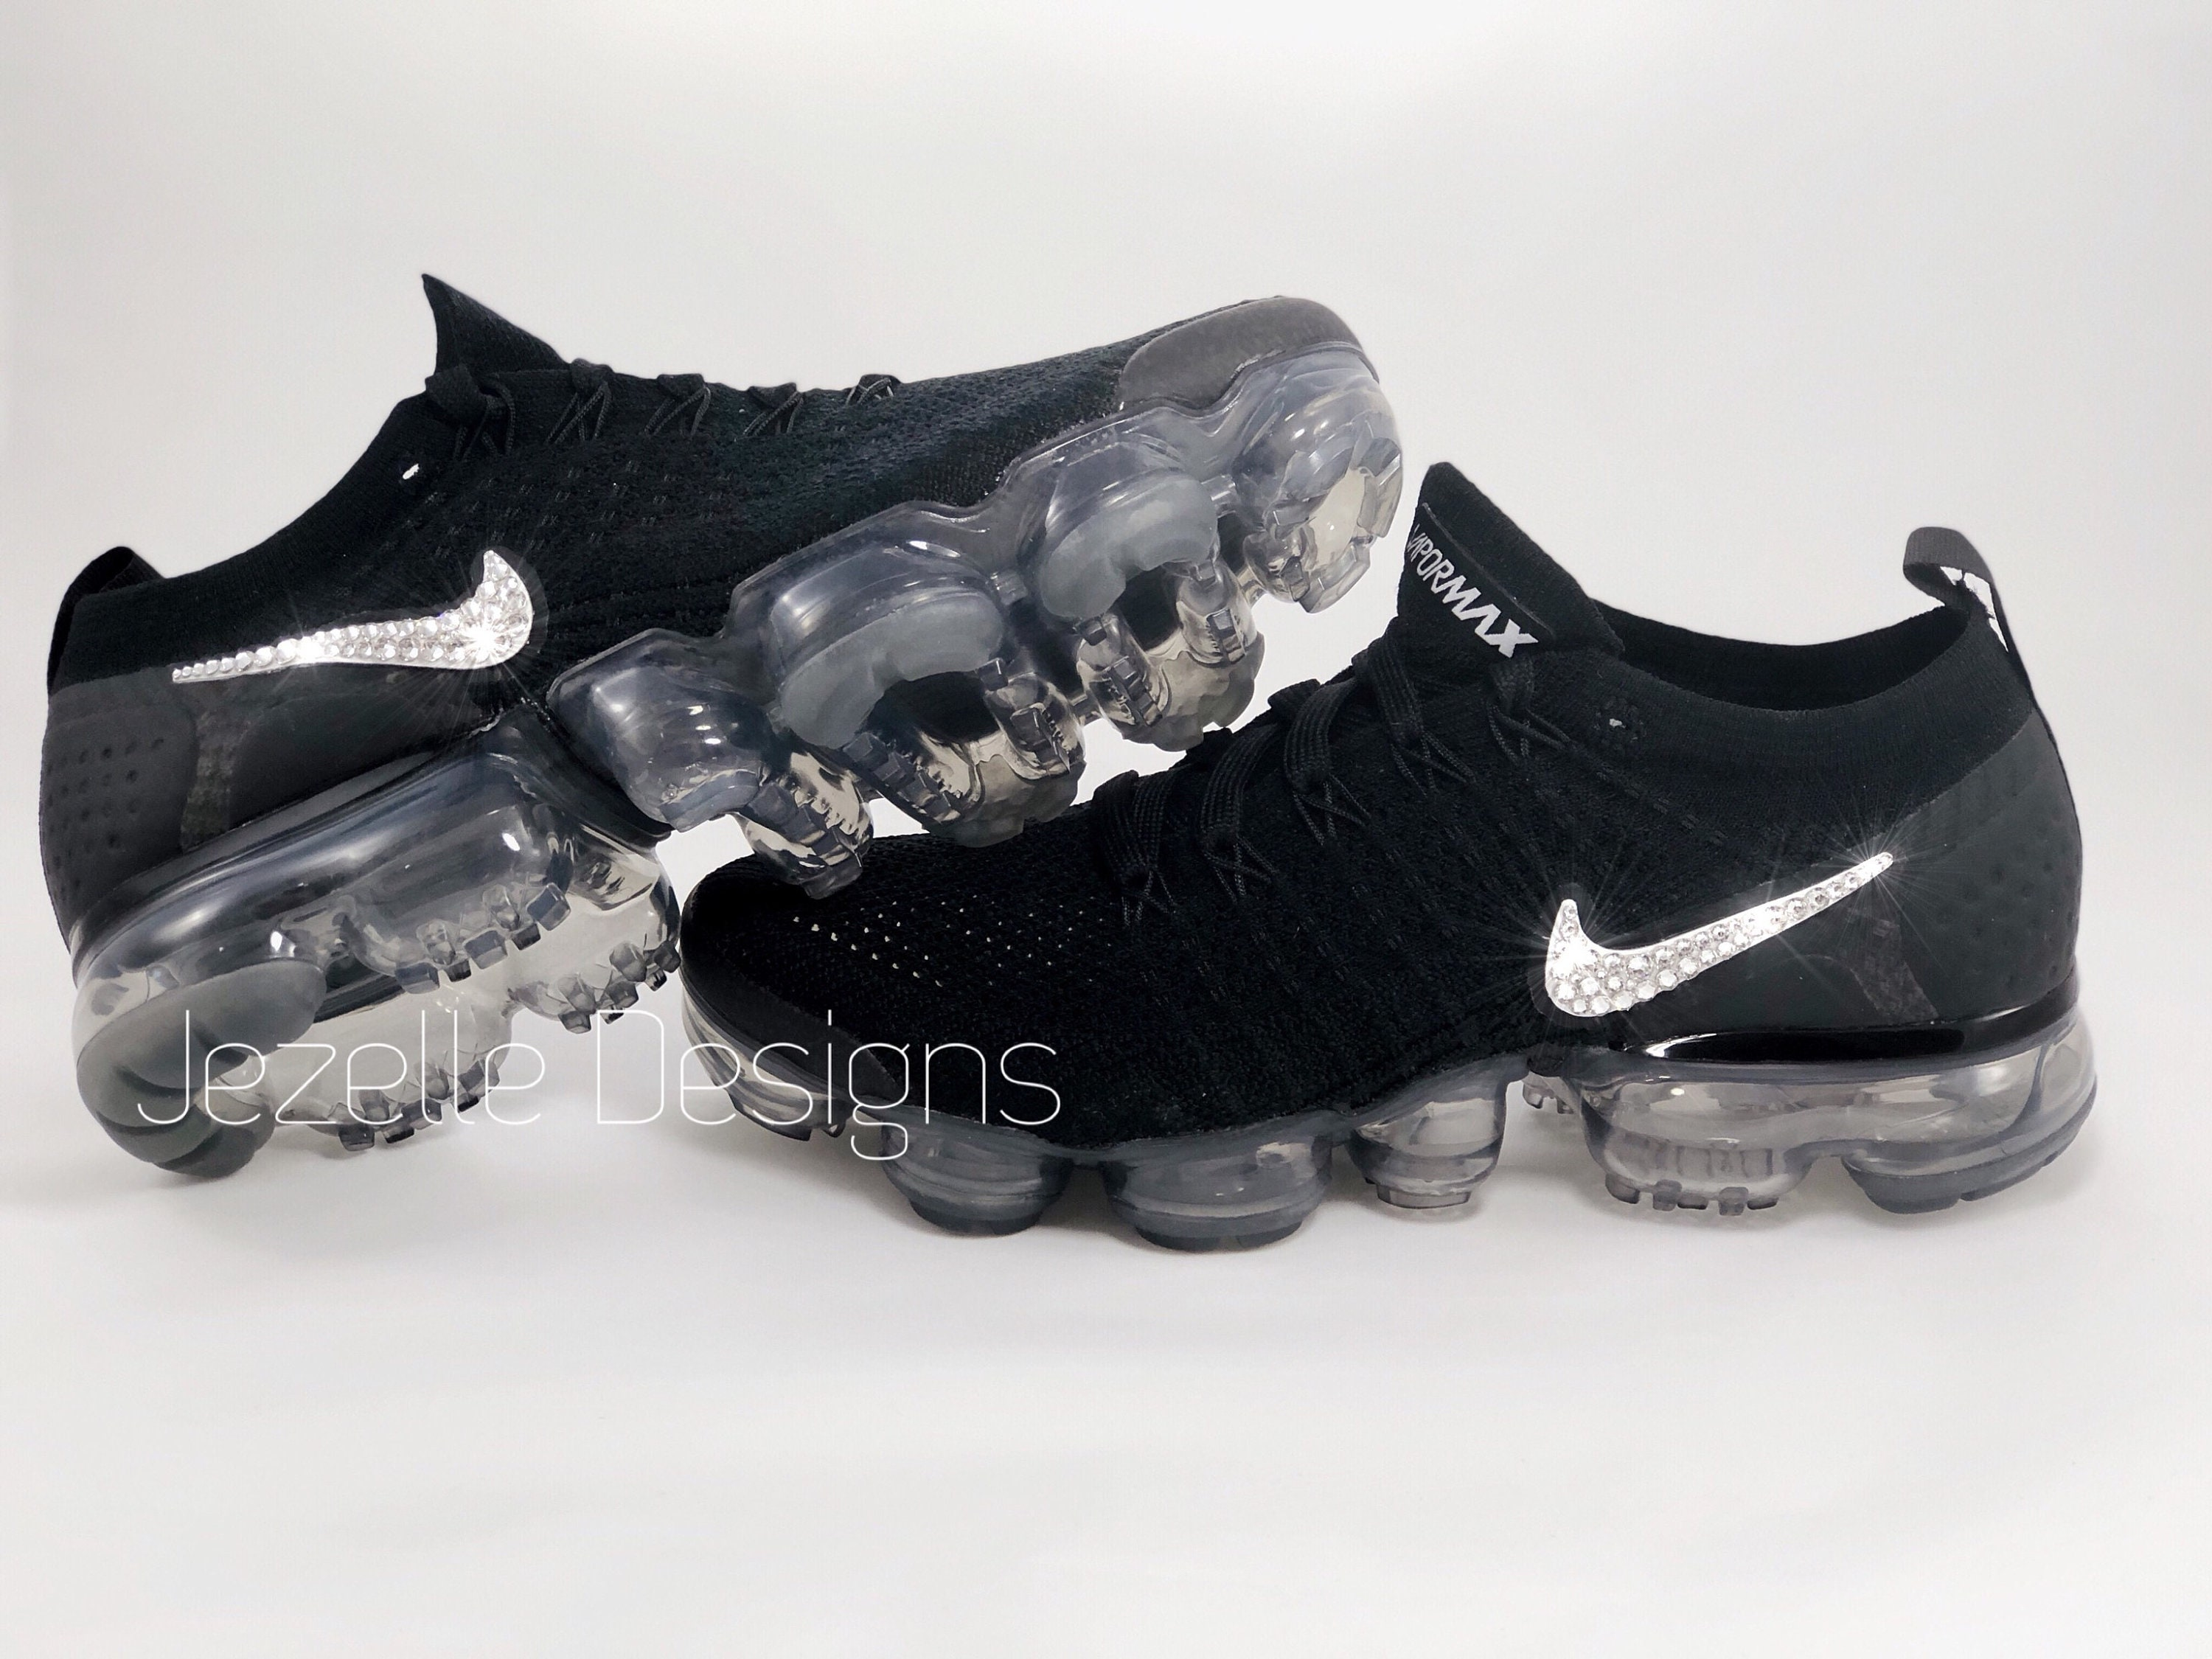 meet bd8da 42919 Swarovski Nike Womens Air VaporMax Flyknit 2 in Black Customized With  Swarovski Crystals Bling Nike Shoes